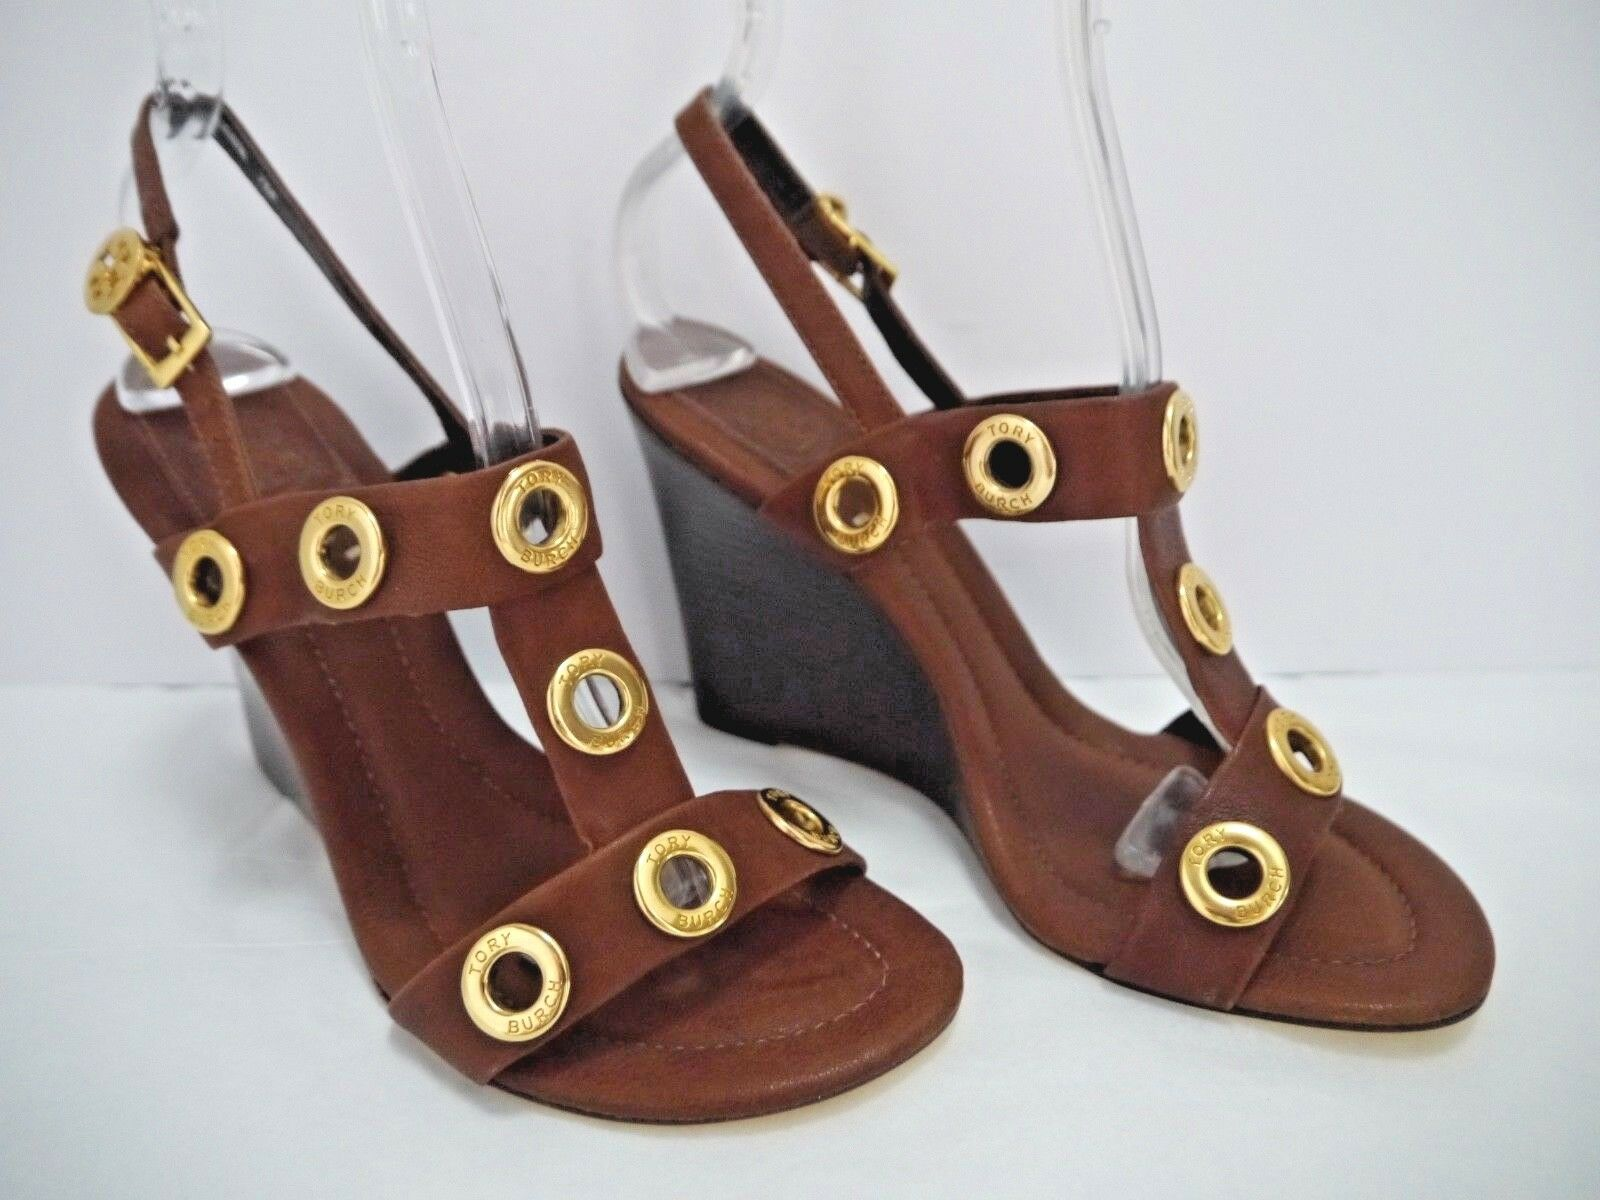 NEW TORY BURCH  325 Kathryn brown leather gold rivet wedge sandals size 7